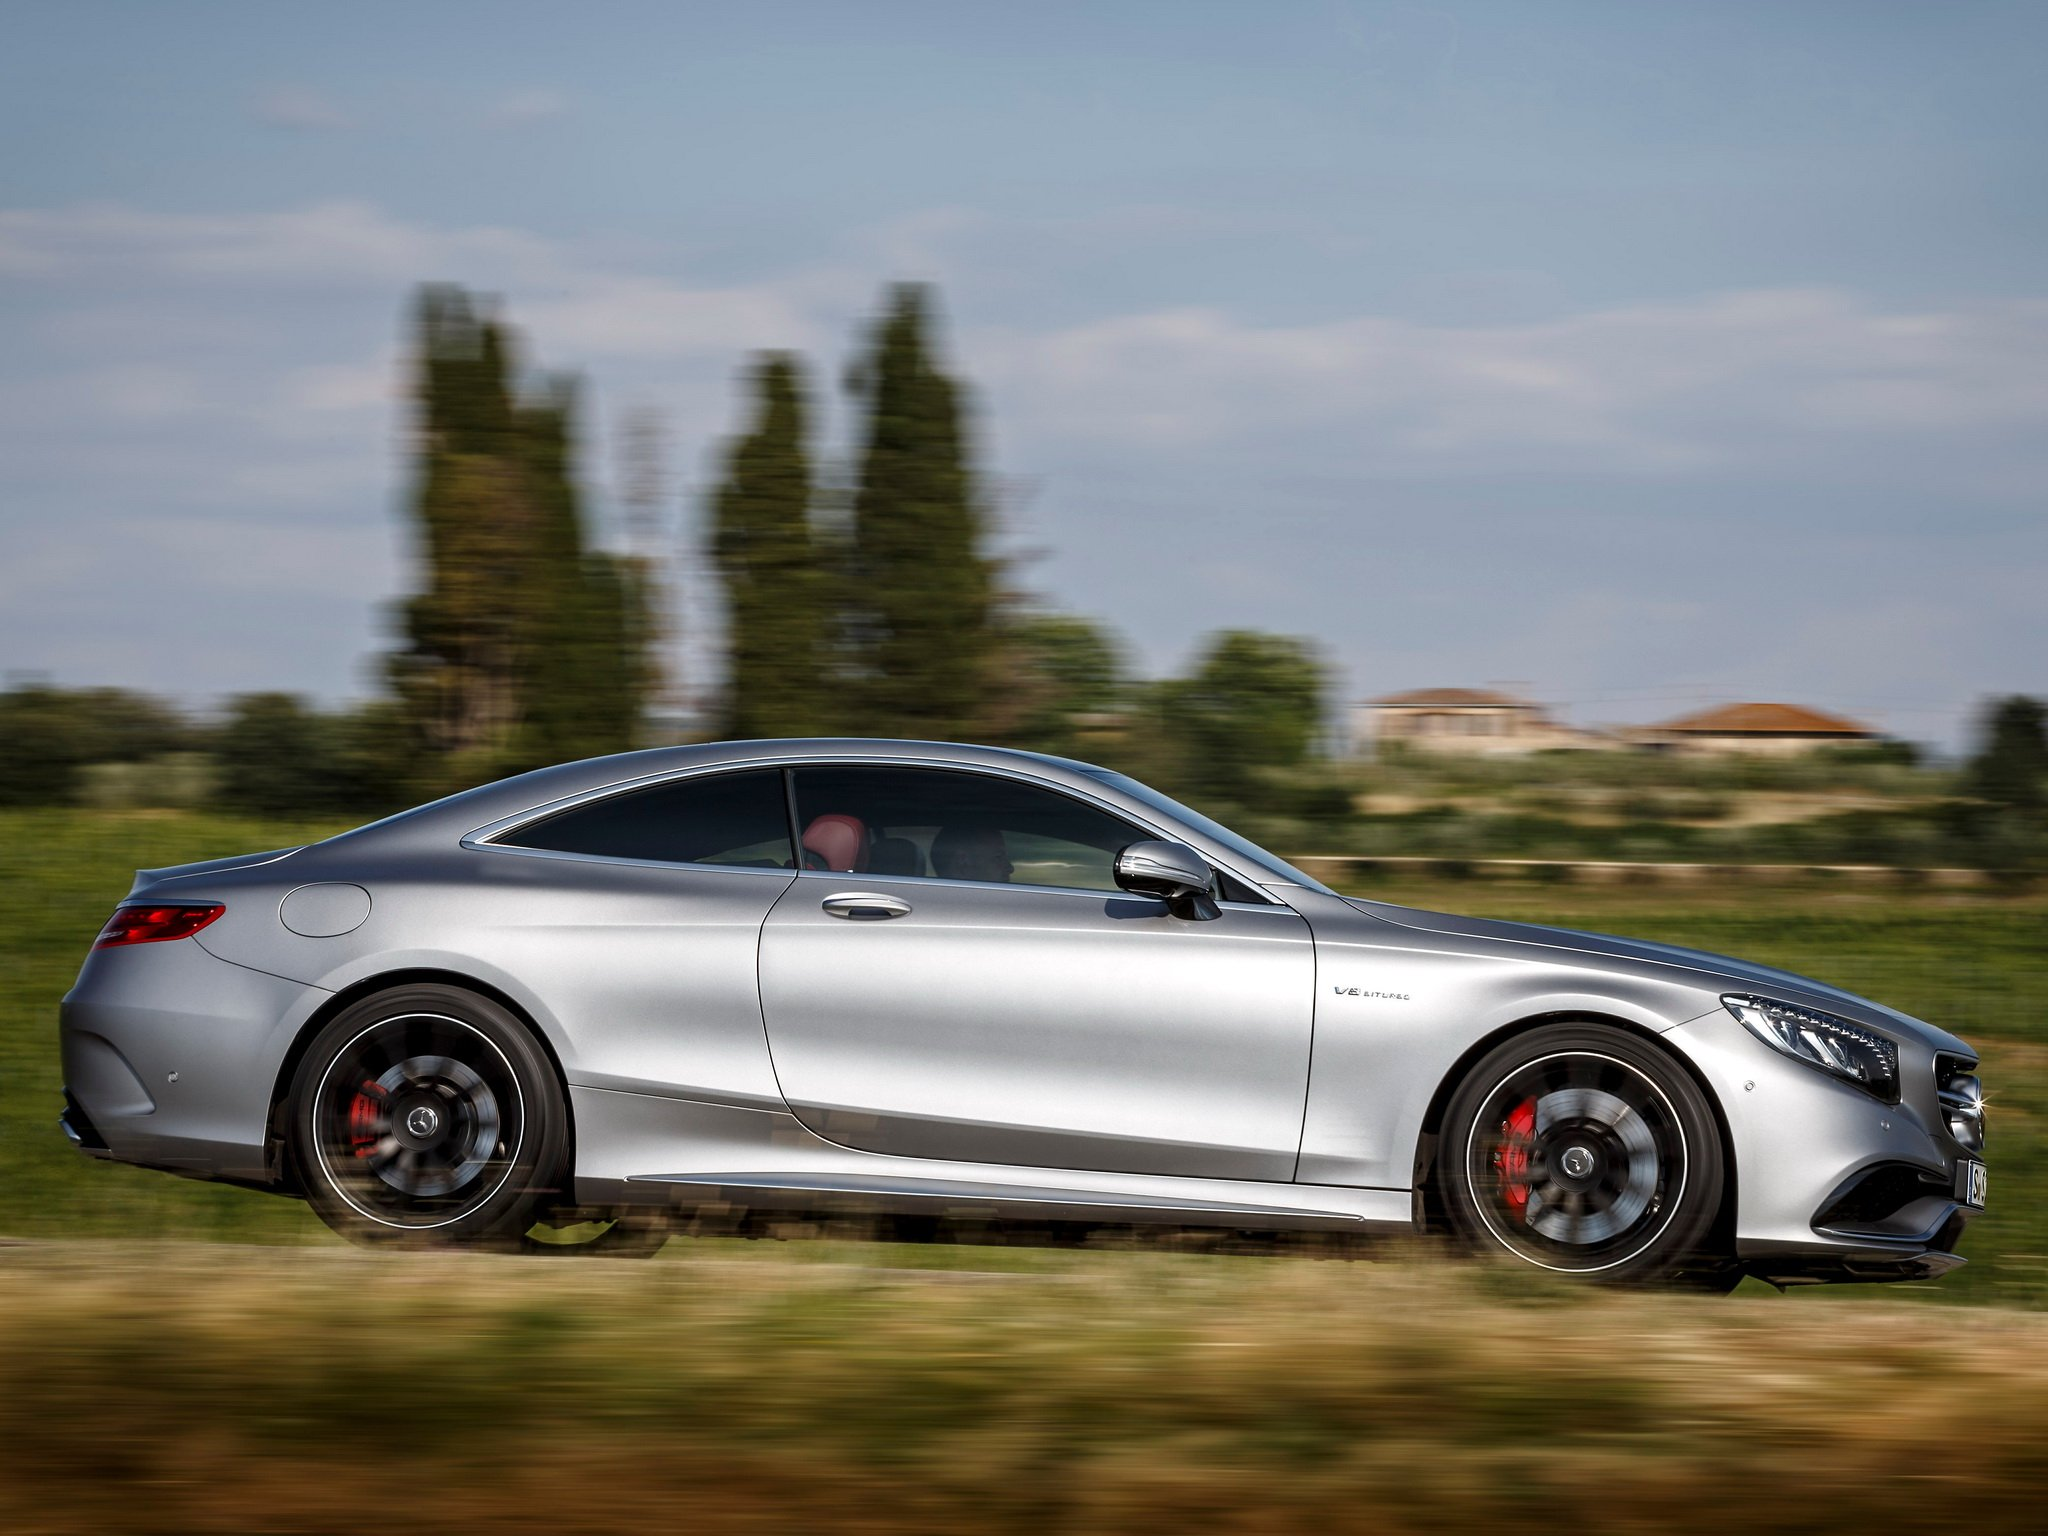 2014 mercedes benz s63 amg coupe c217 fs wallpaper for 2014 mercedes benz s63 amg for sale